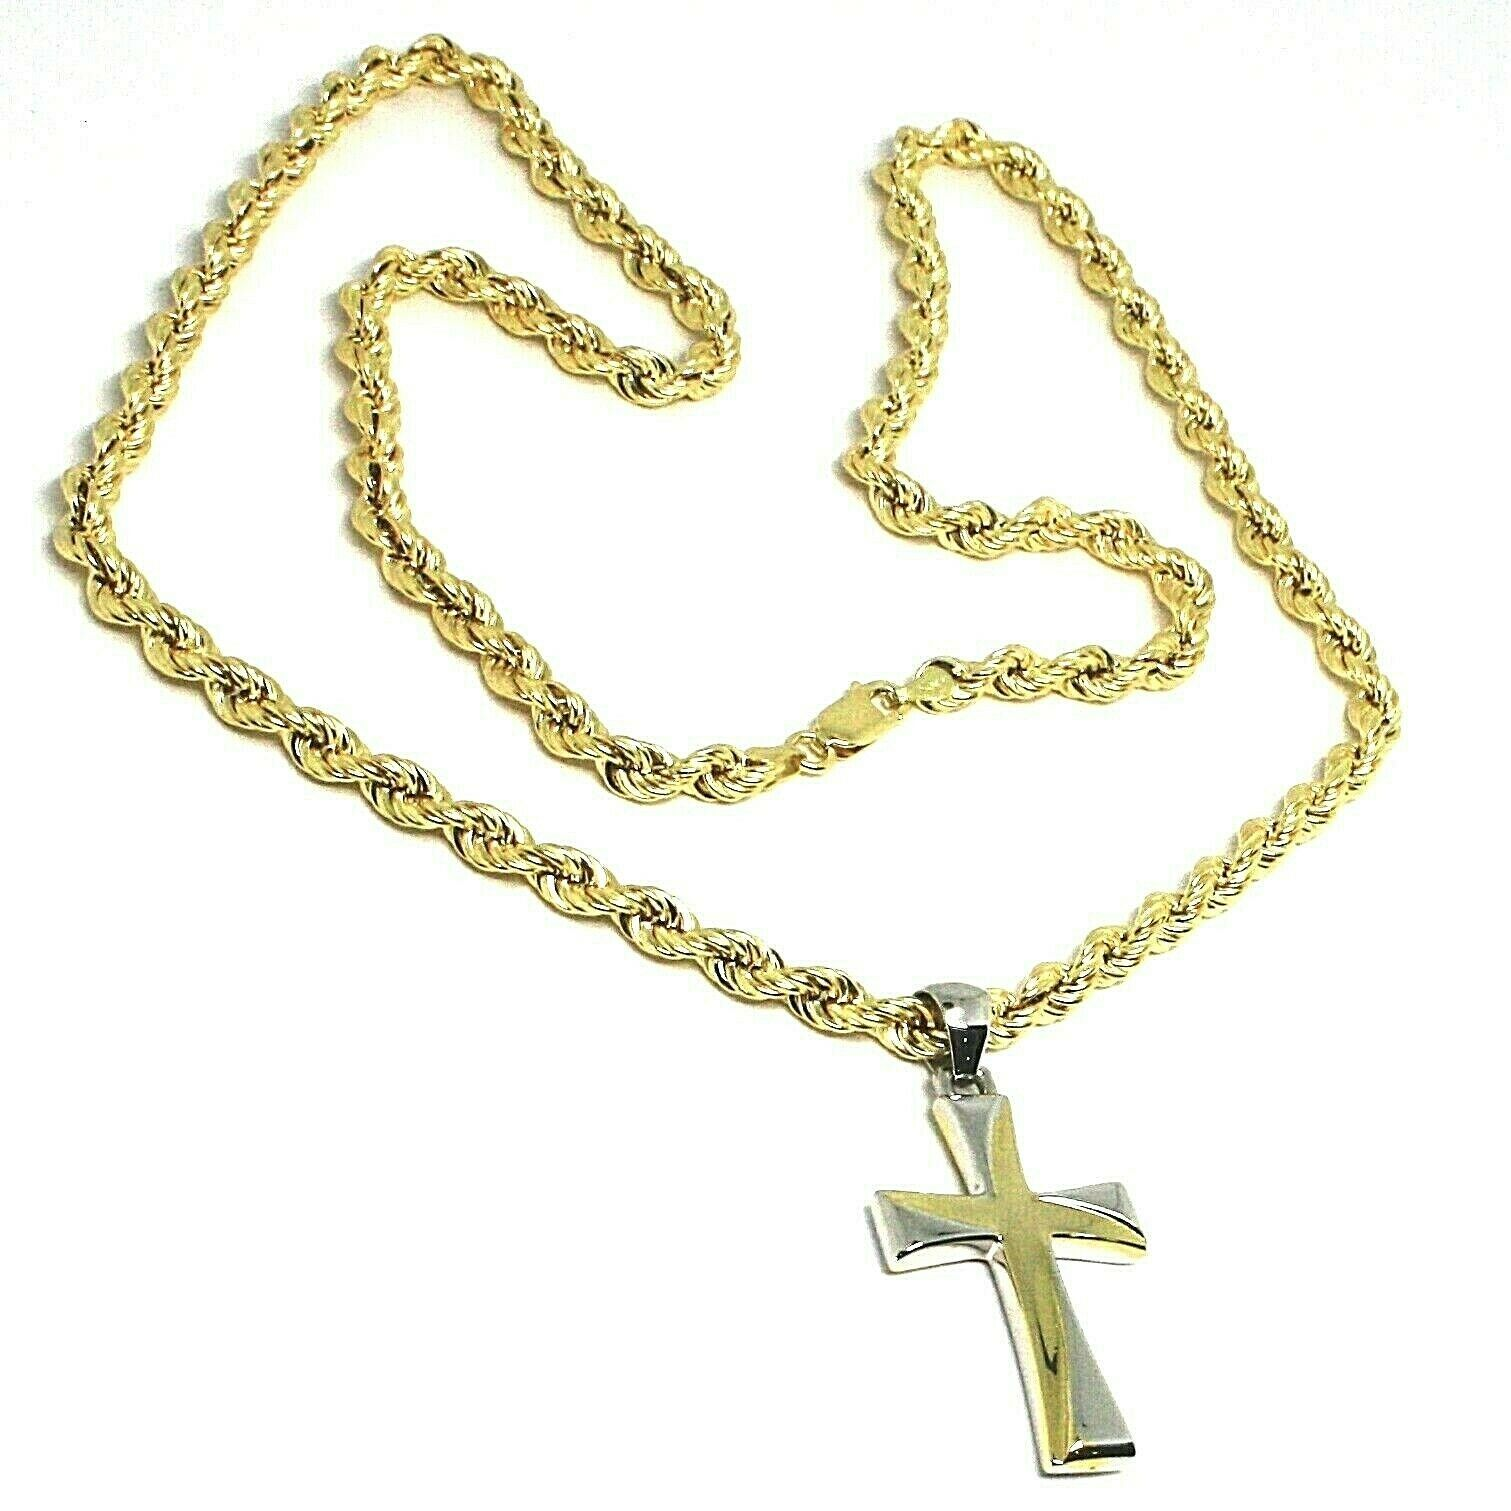 Primary image for 18K YELLOW GOLD BIG 5 MM ROPE CHAIN, 24 INCHES & STYLIZED SQUARE TWO TONE CROSS